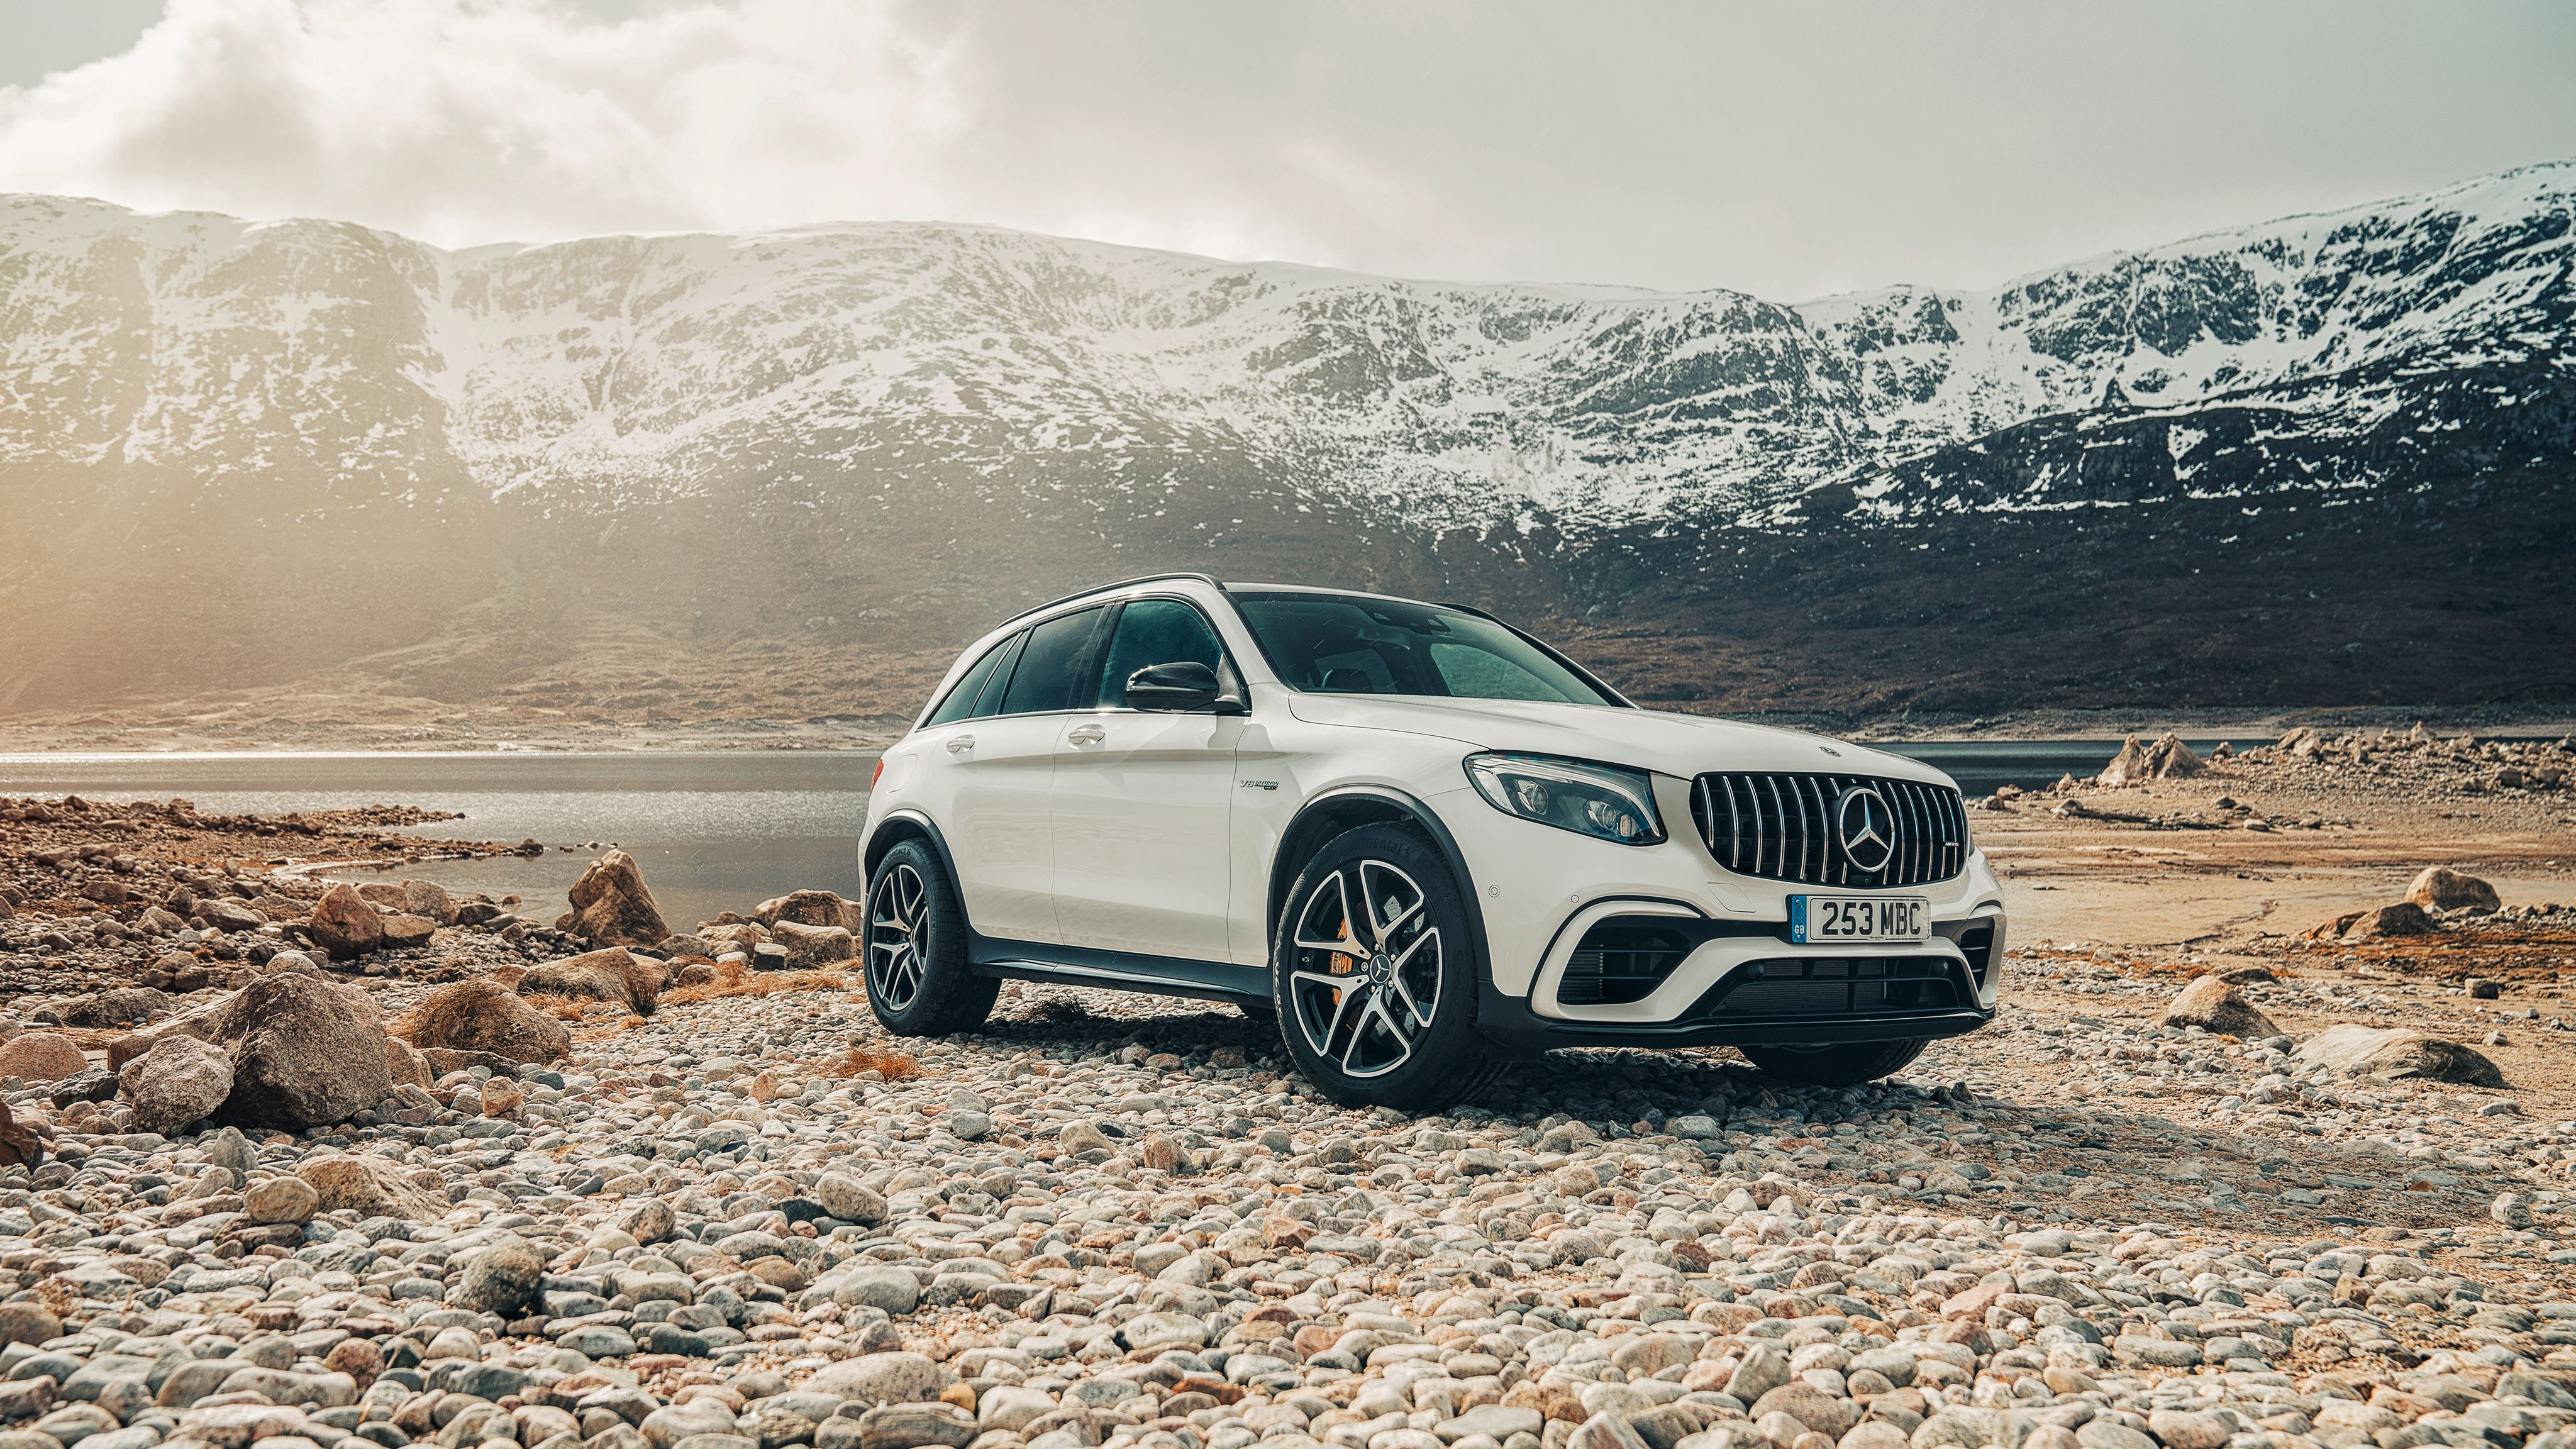 2018 Mercedes AMG GLC 63 S 4MATIC 4K Wallpapers